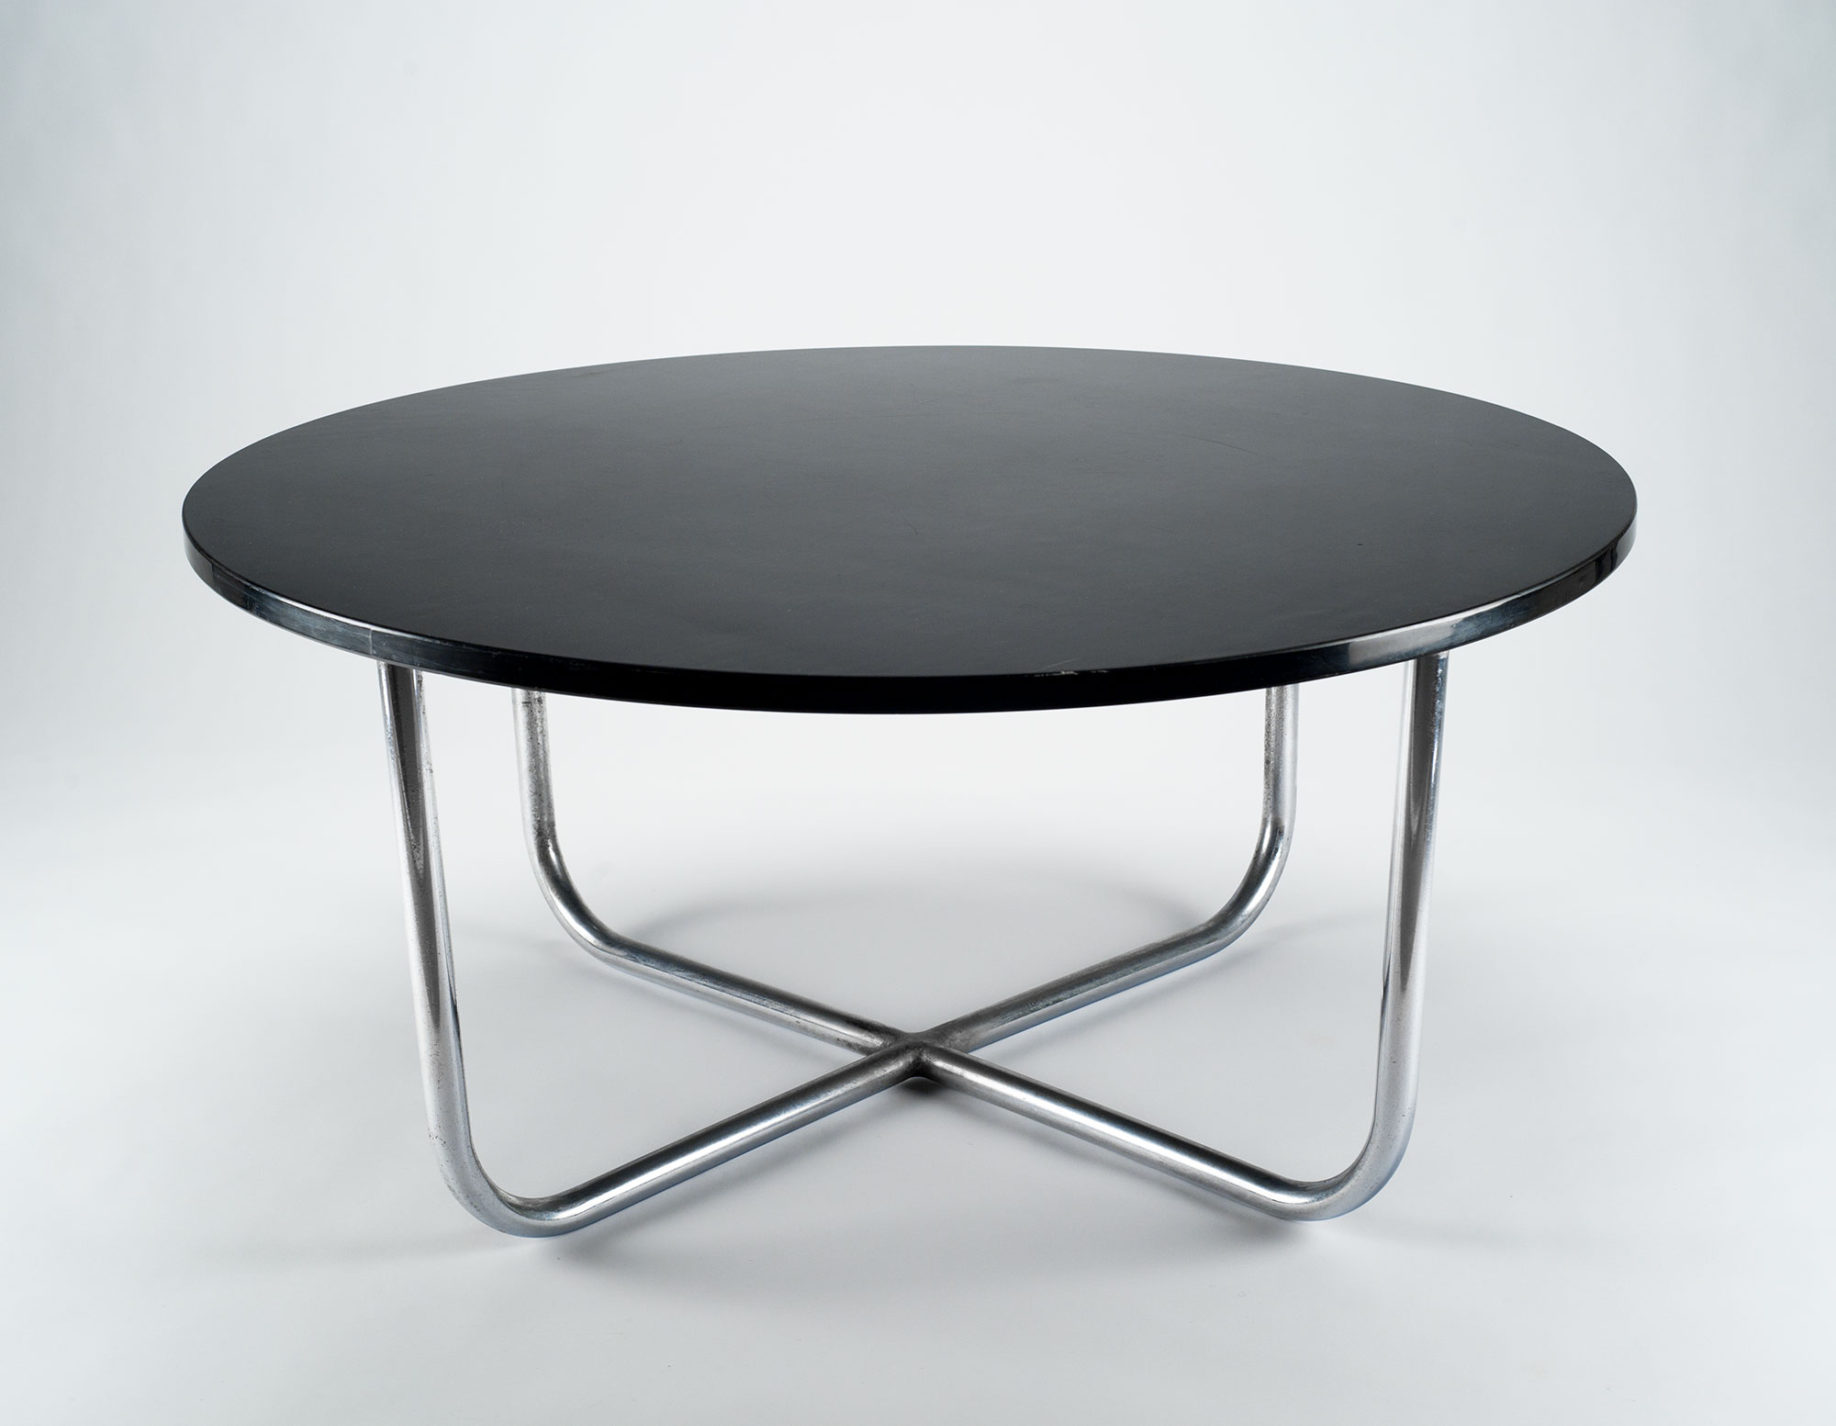 Coffee table. Circular black table top set on tubular steel legs that bend at the bottom and meet to form a cross at the center.